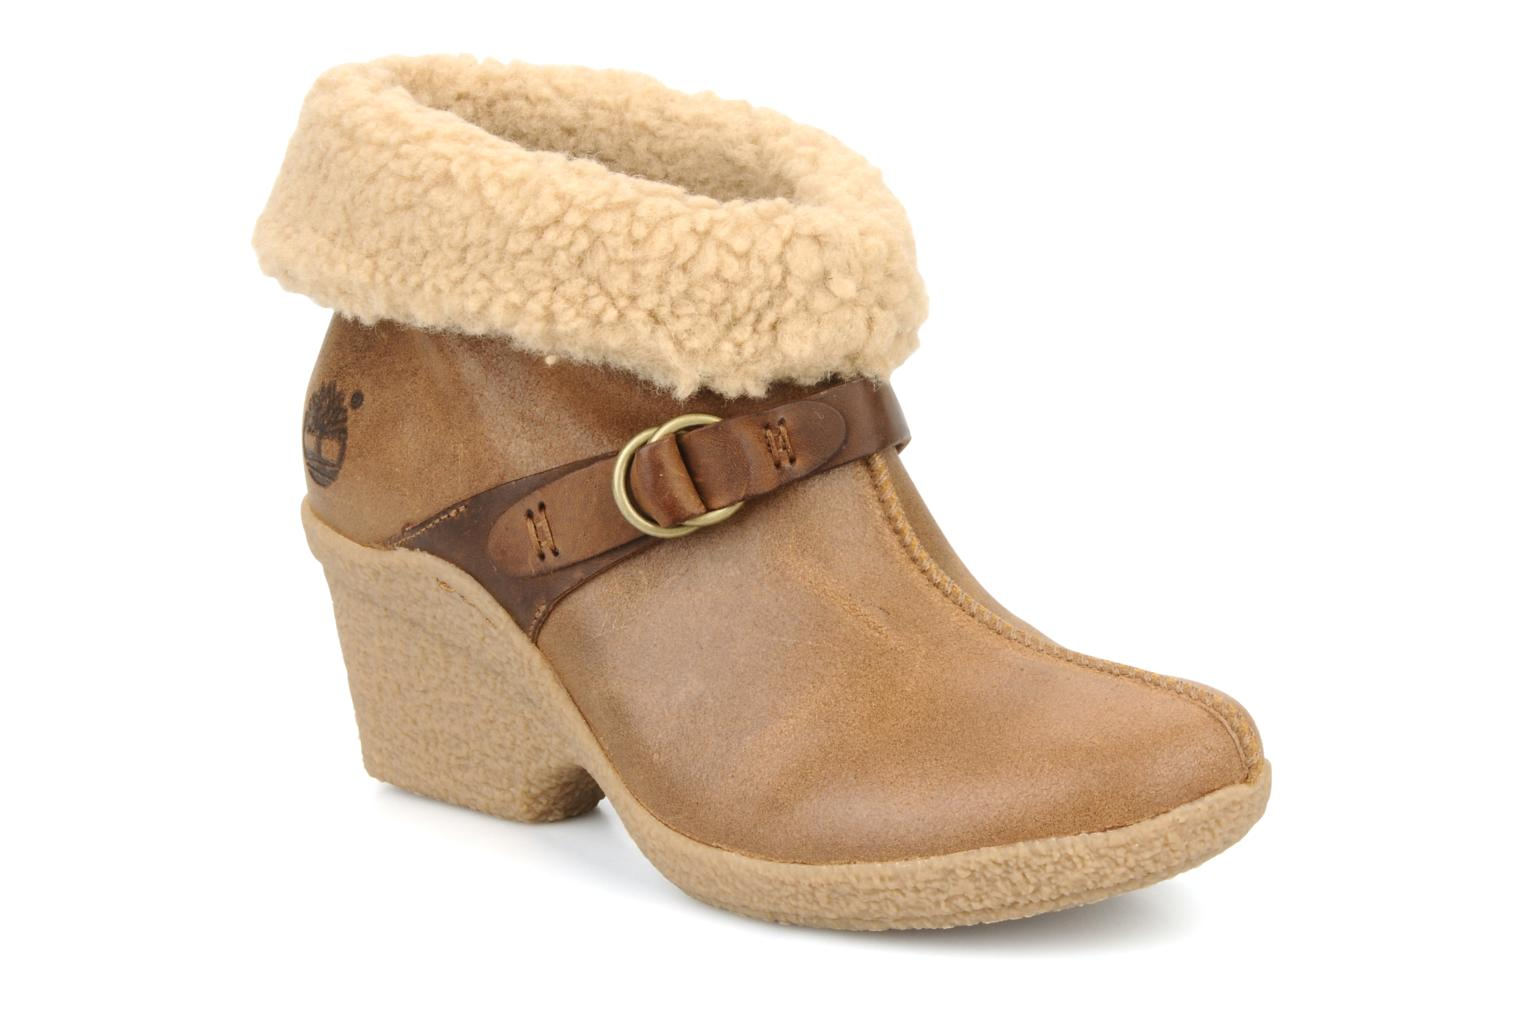 Timberland boots Shoes Women  Shipped Free at Zappos